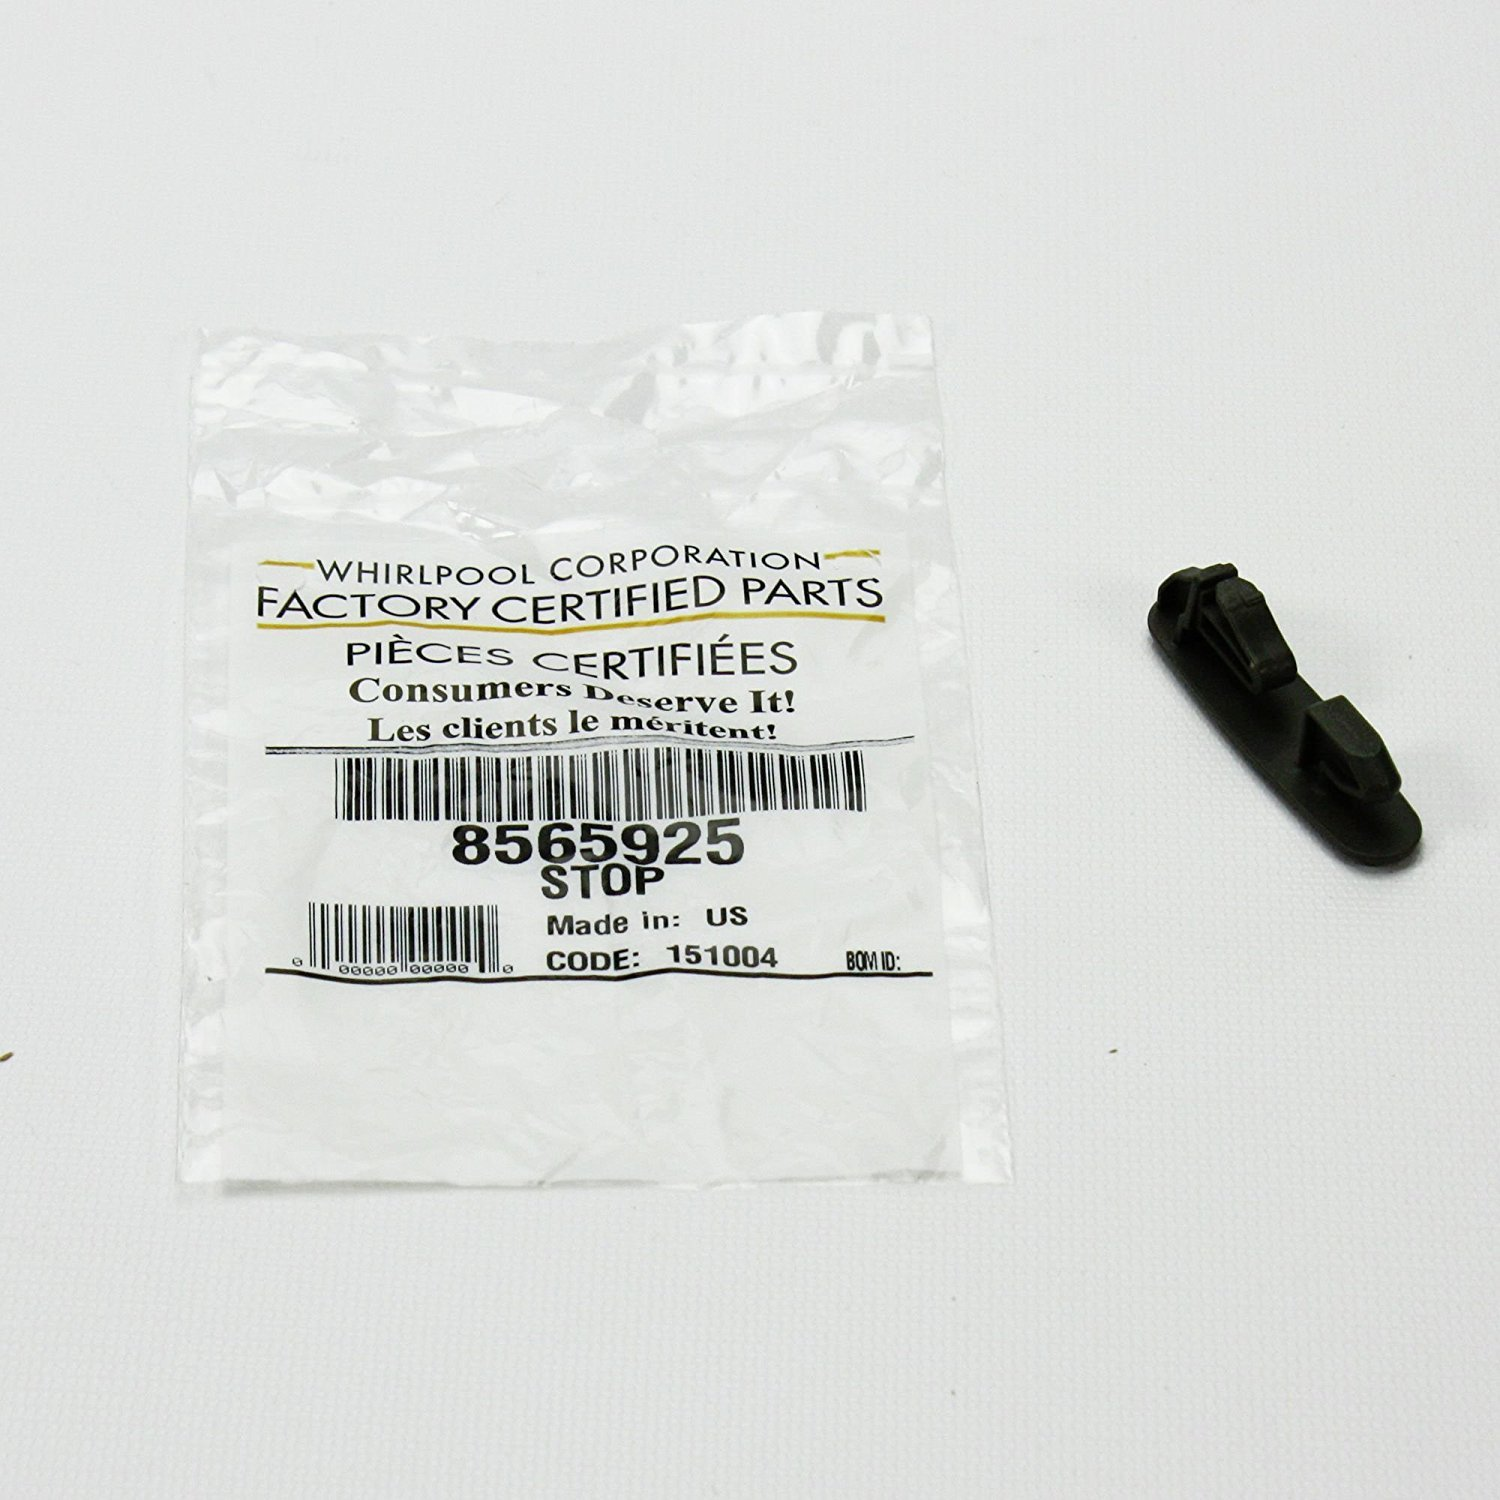 Parts Diagram List For Model Wed9600tw0 Whirlpoolparts Dryer Whirlpool Part Number 8565925 Stop Track